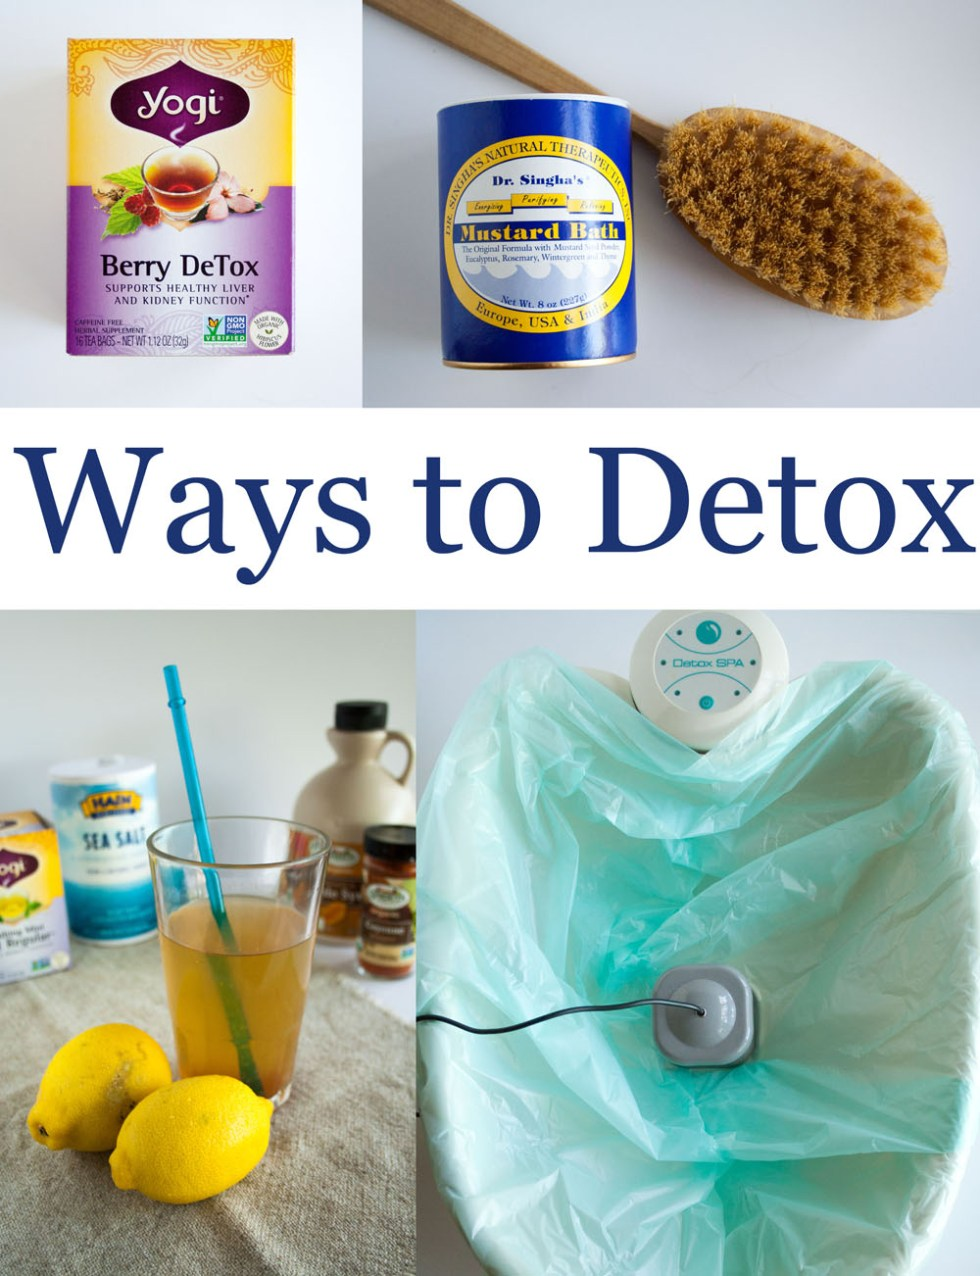 Ways to Detox - There are many ways to detox: from daily to seasonal, and gentle to rigorous. Choose the one that is right for you!